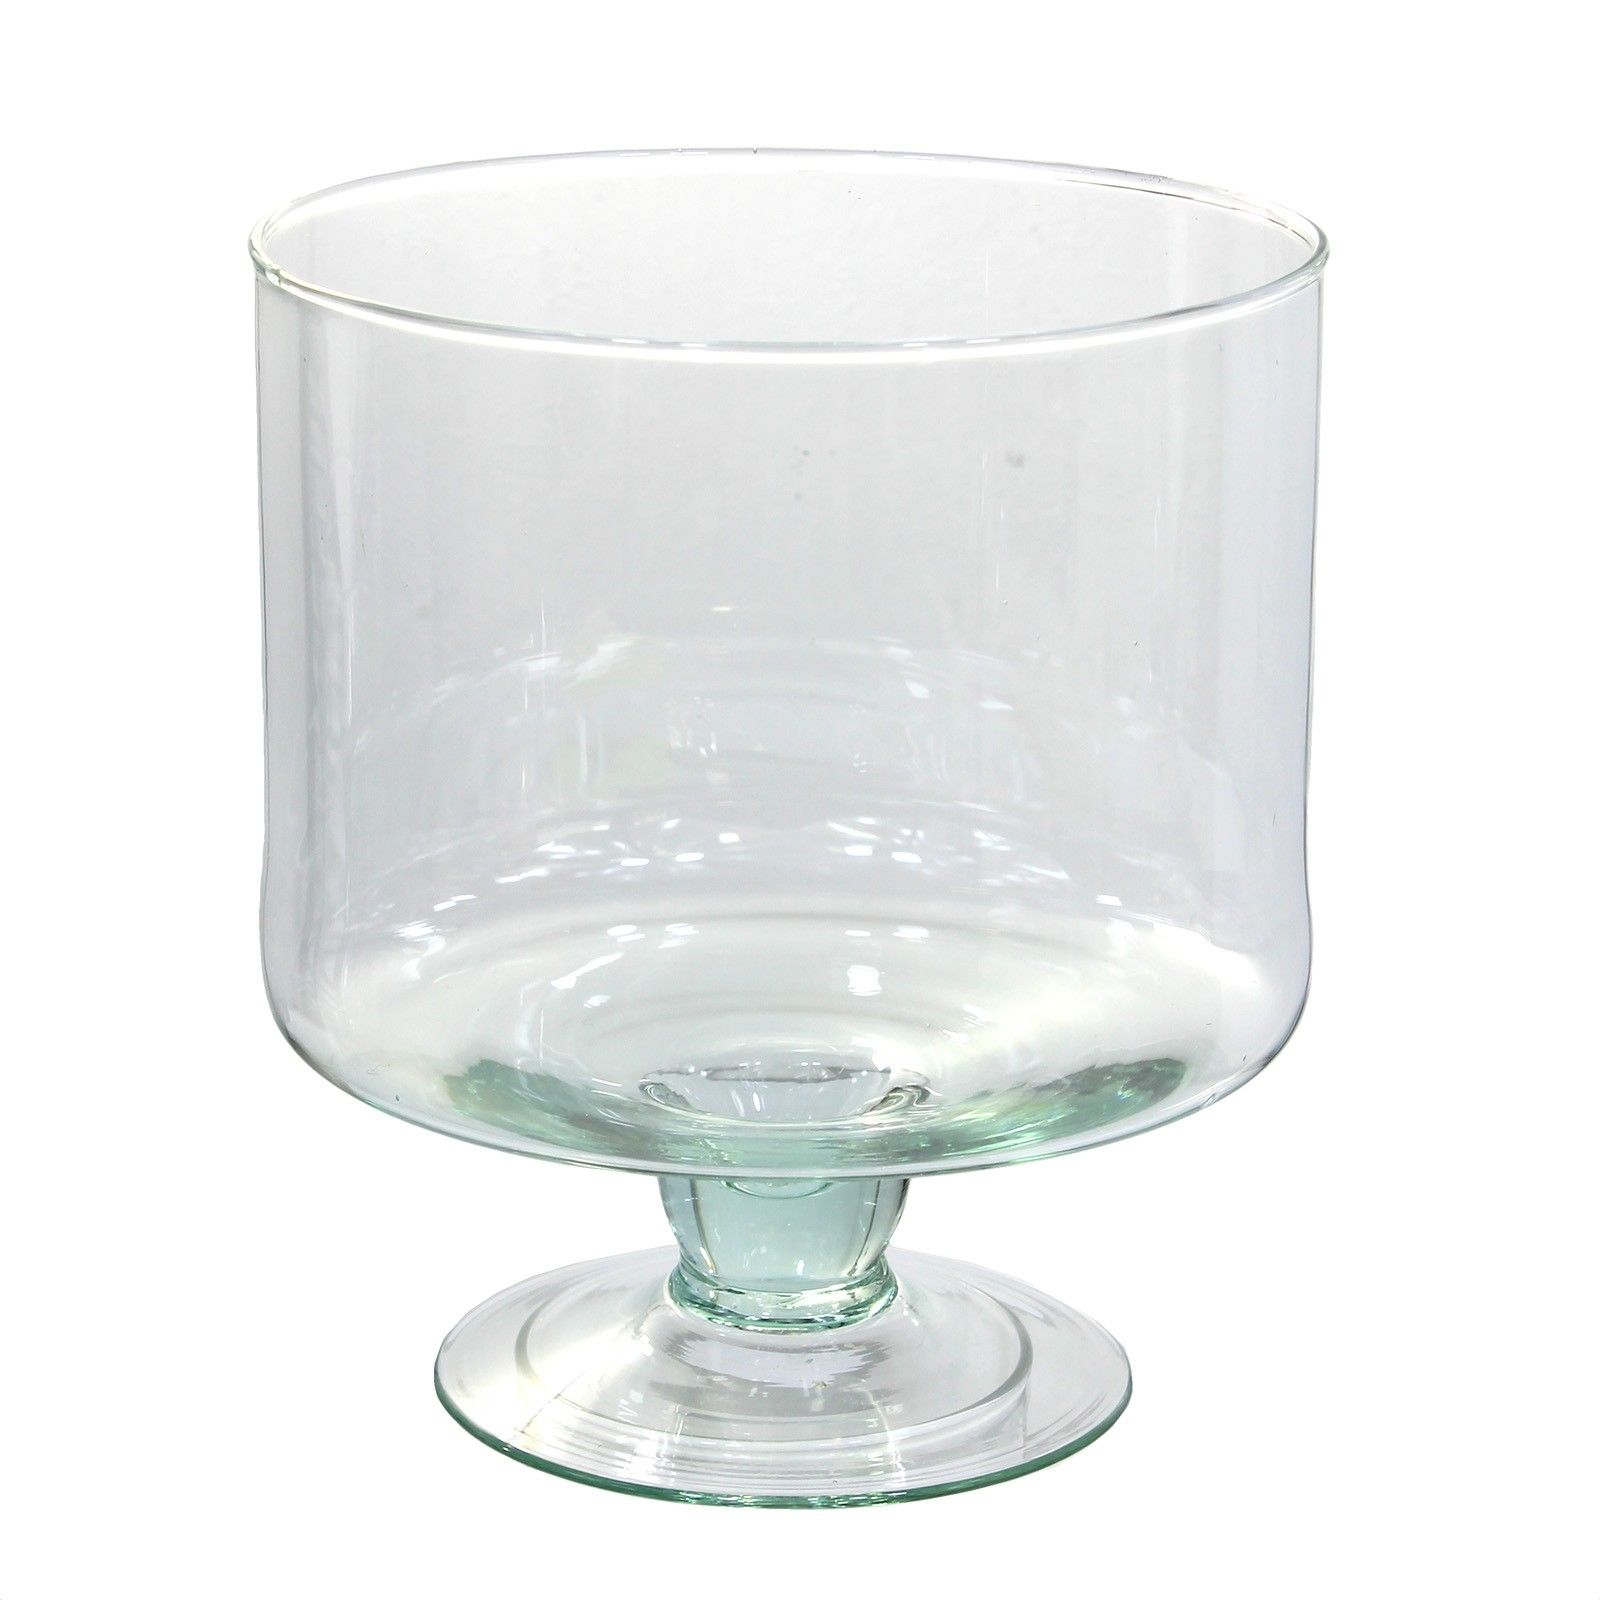 This listing is for one home decoration large glass bowl 15 ltr this listing is for one home decoration large glass bowl ltr cake stand style vase decorative display reviewsmspy